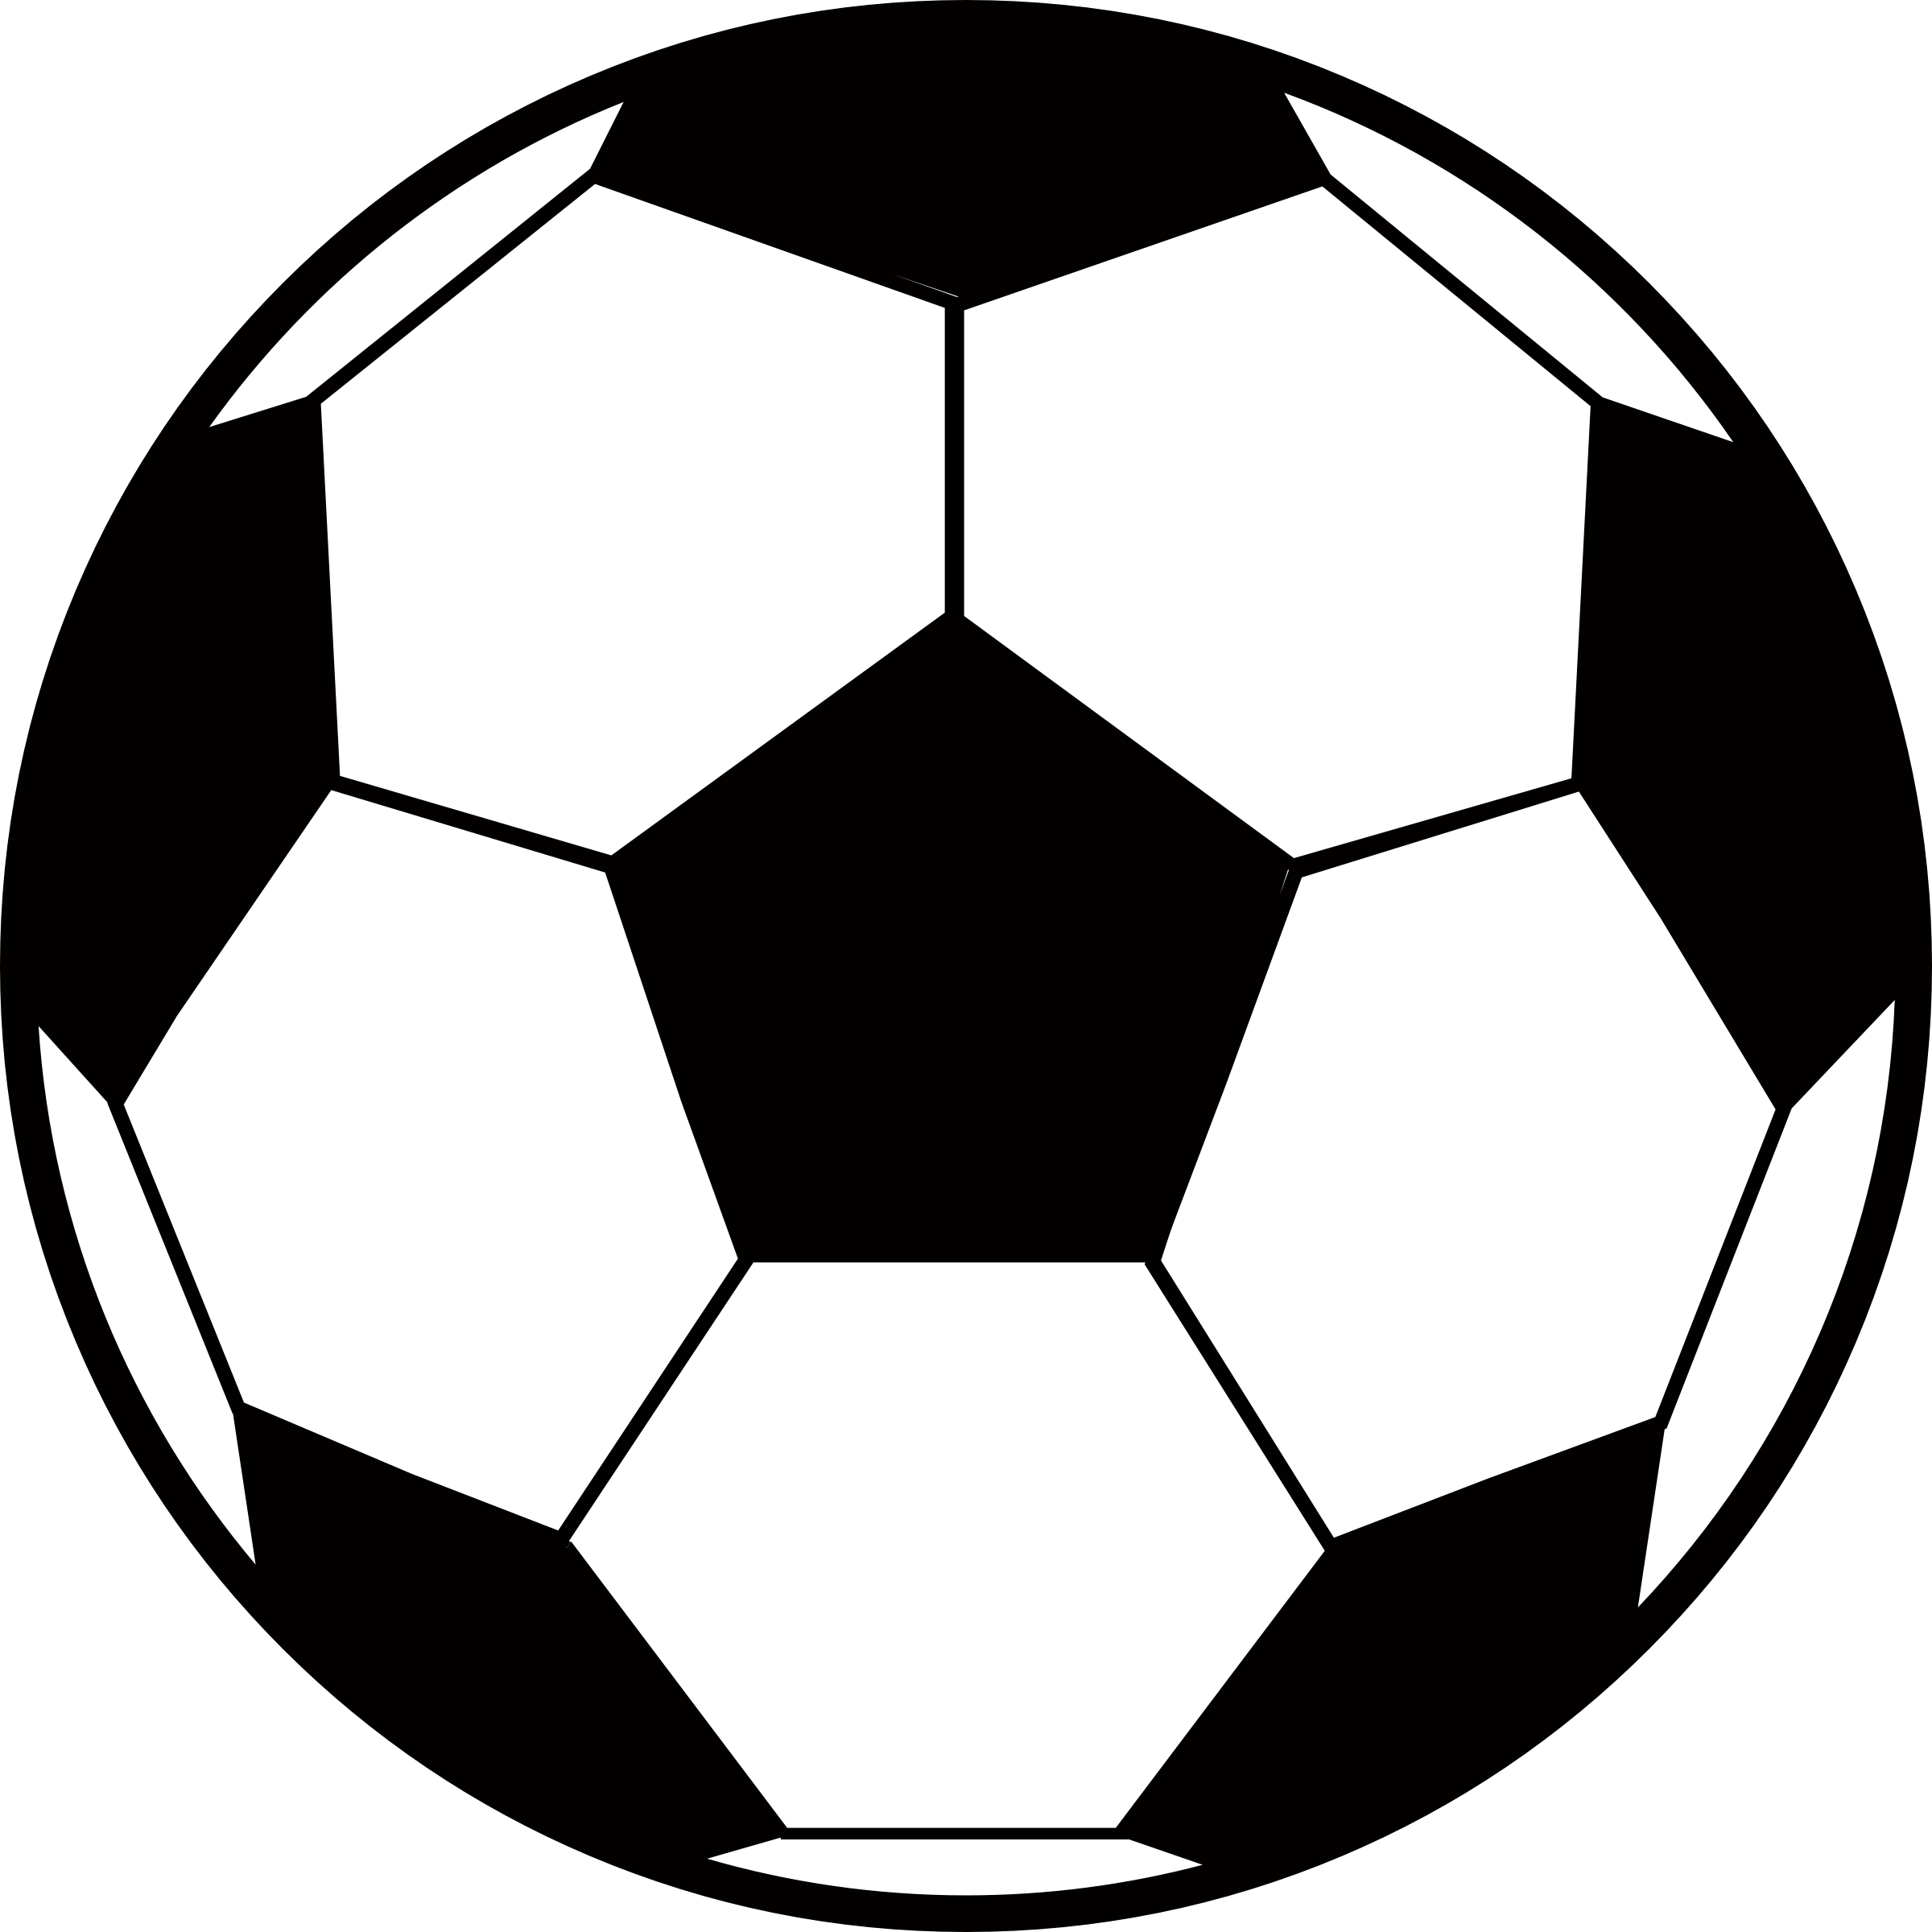 Pin By Audra Hartwig On Black And White Clipart Soccer Birthday Parties Soccer Ball Soccer Birthday